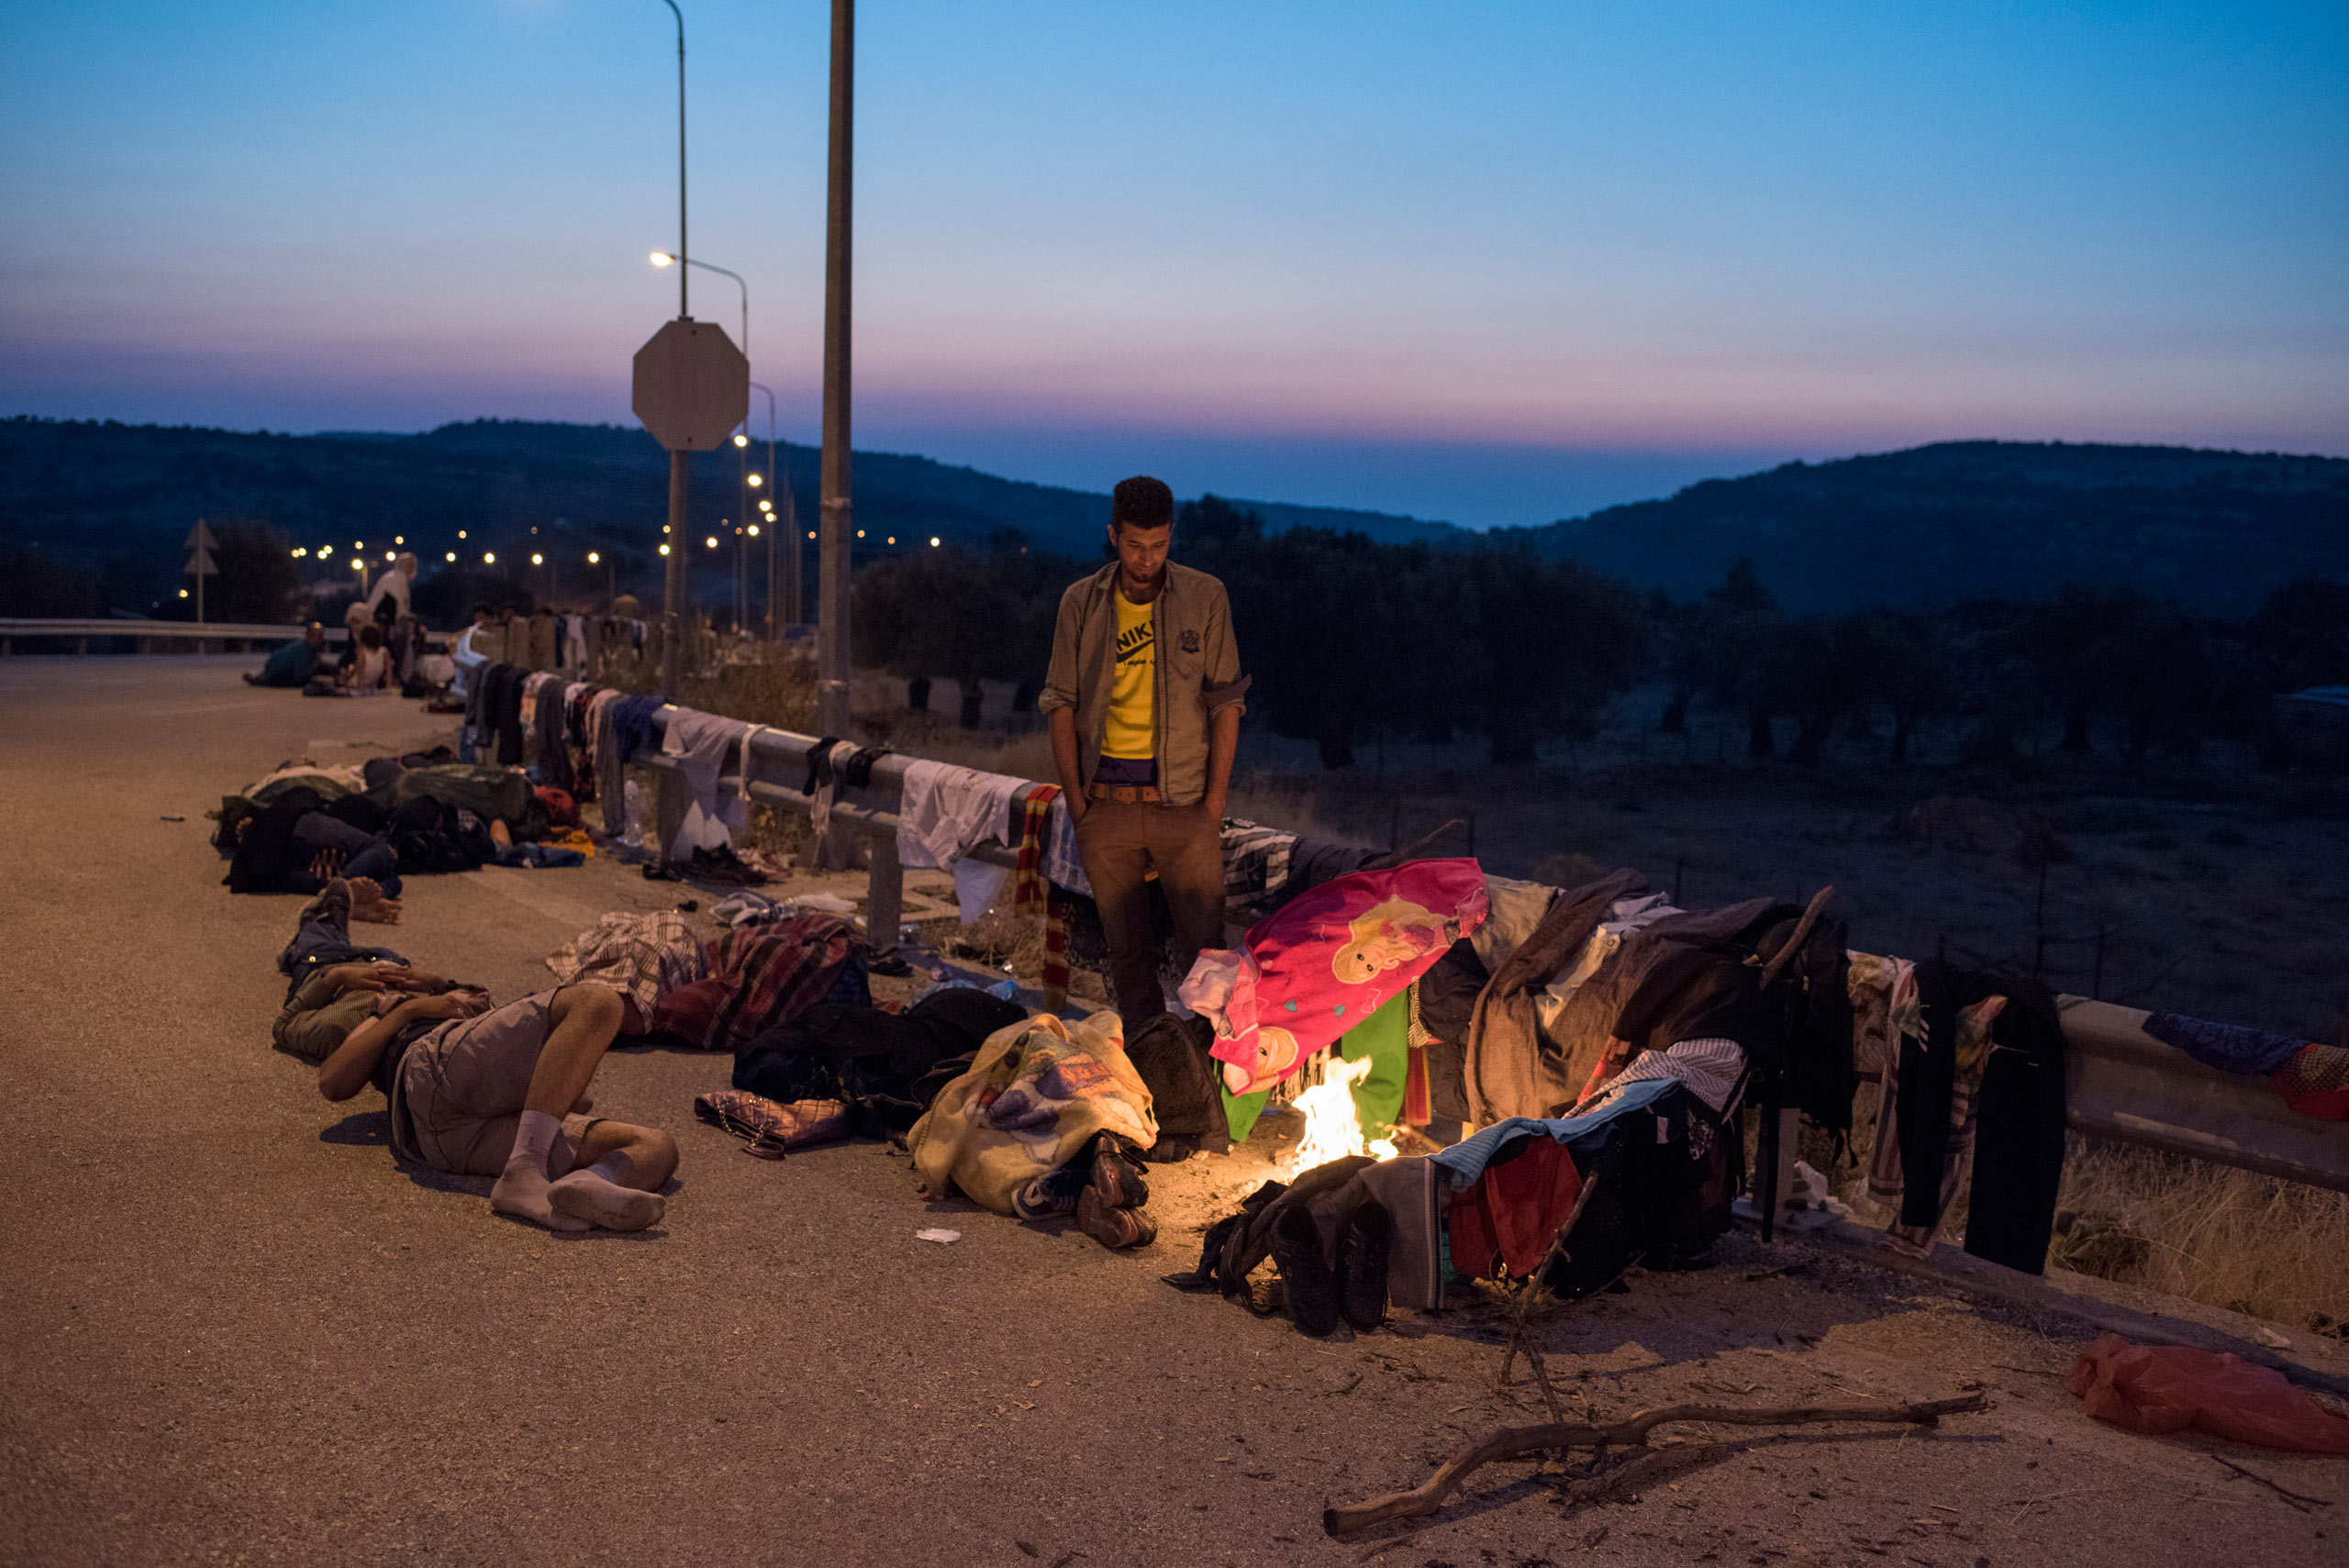 Migrants form a camp to rest on the roadside on the island of Lesbos, Greece, after coming ashore from Turkey on overcrowded rubber boats. Lesbos, Greece, Sept. 4, 2015.